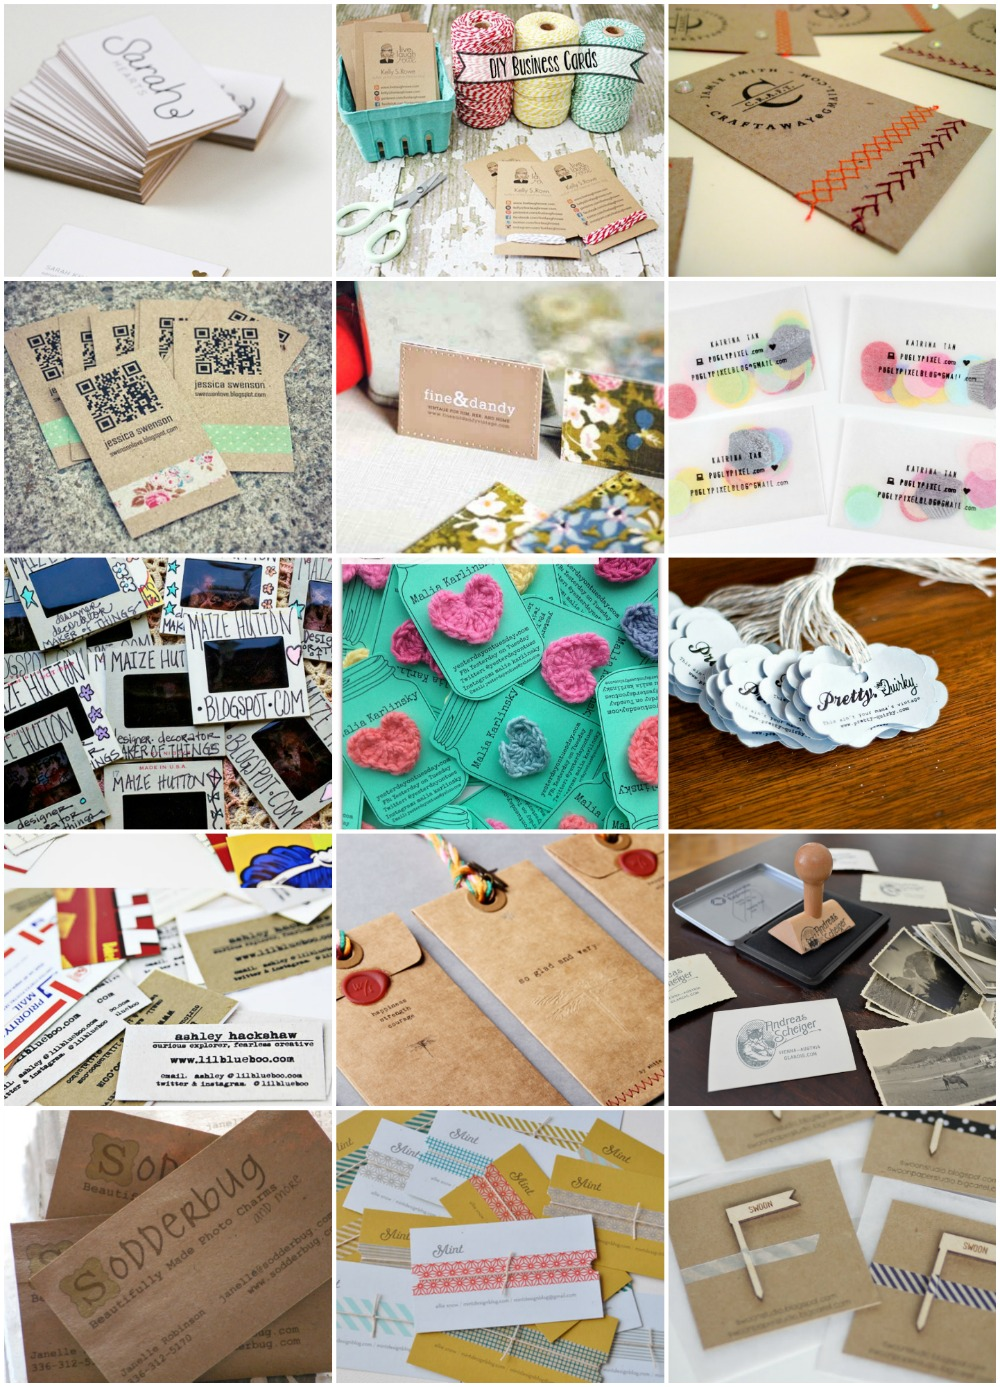 Fun Business Cards You Can Make Yourself REASONS TO SKIP